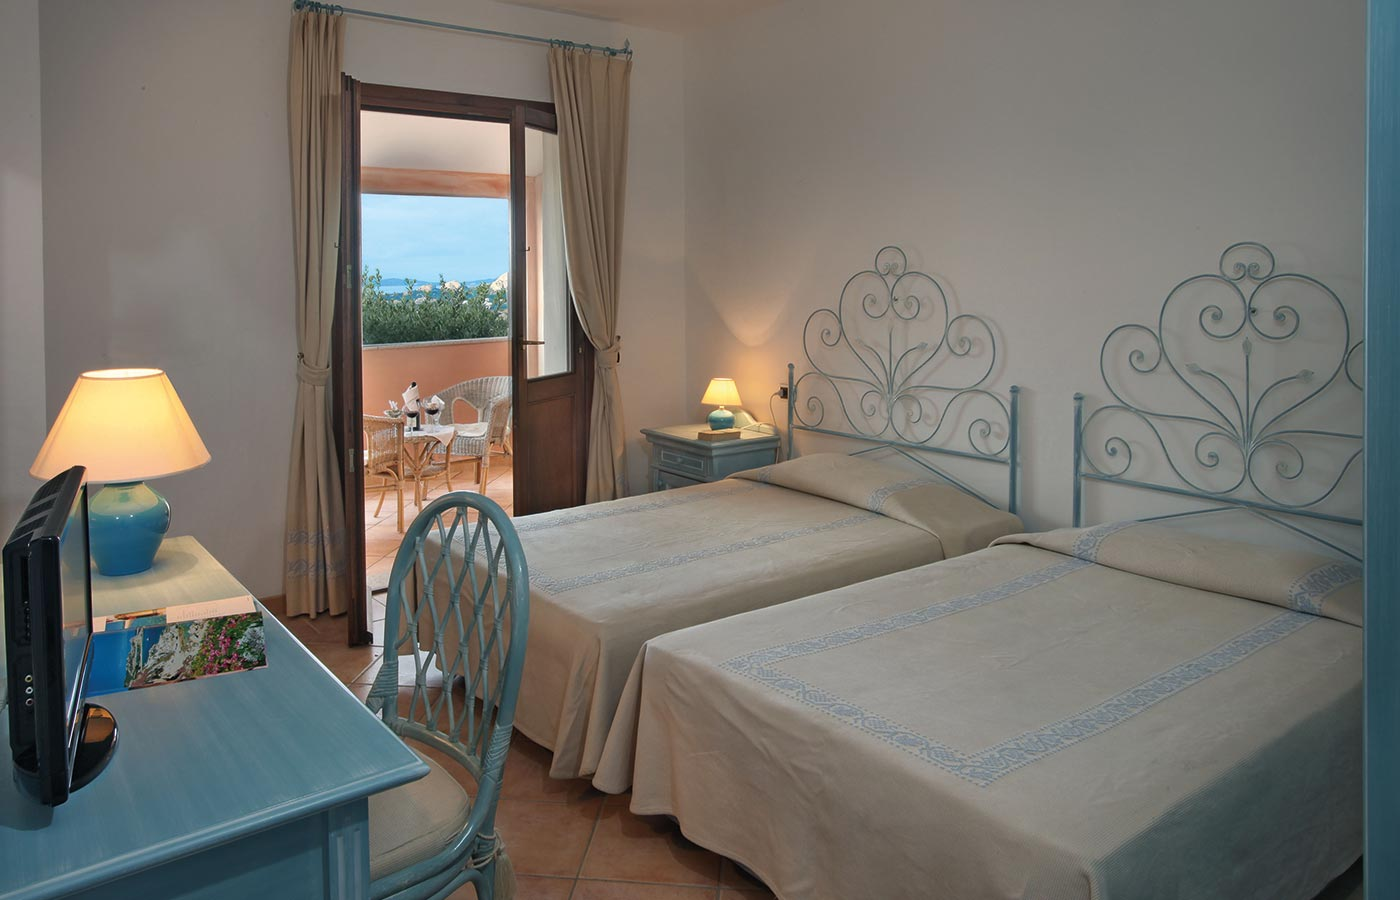 Dream rooms at your dream holiday accommodation in Sardinia